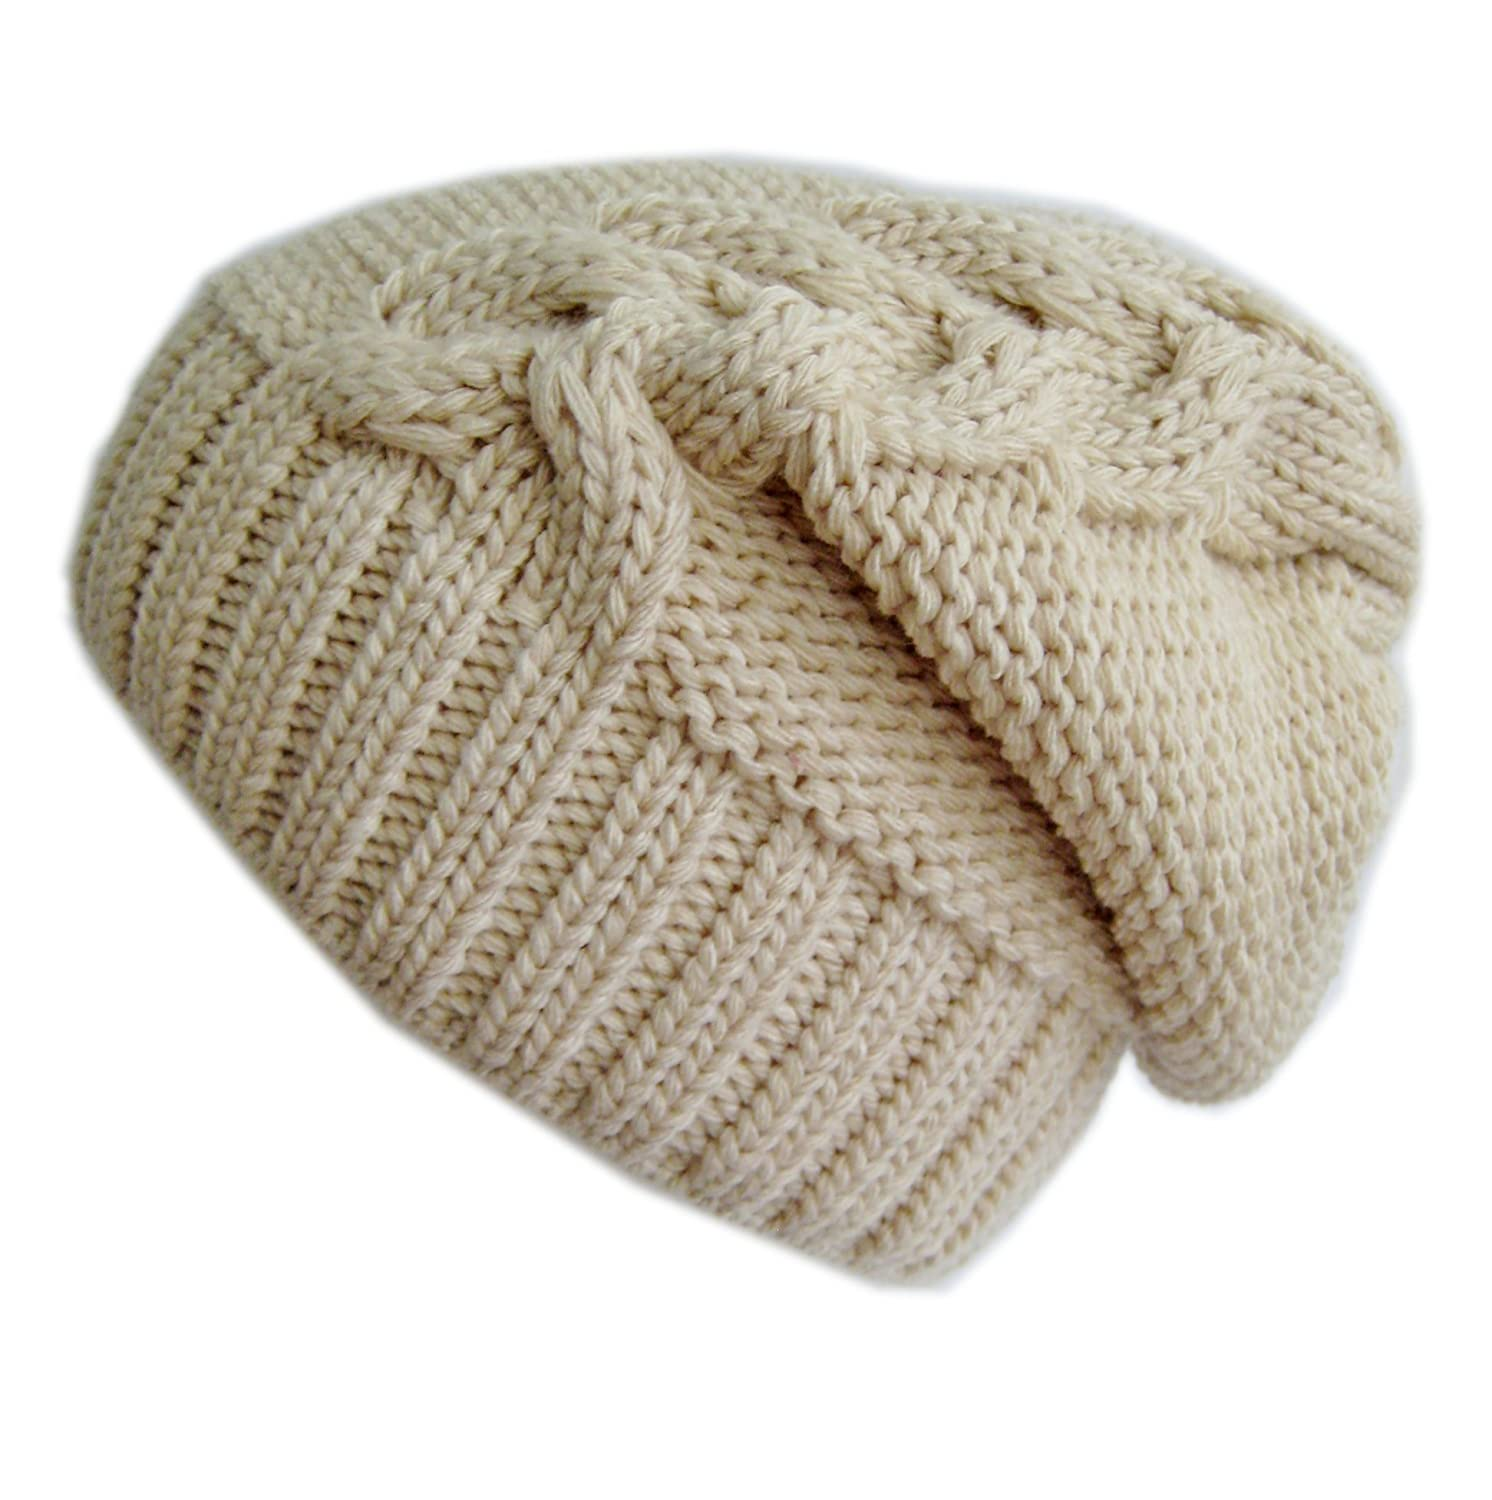 Frost Hats Winter Slouchy Hat Cable Knit Beanie M-2013-23A BEIGE at Amazon  Women s Clothing store  Skull Caps 9d17f78fdb2